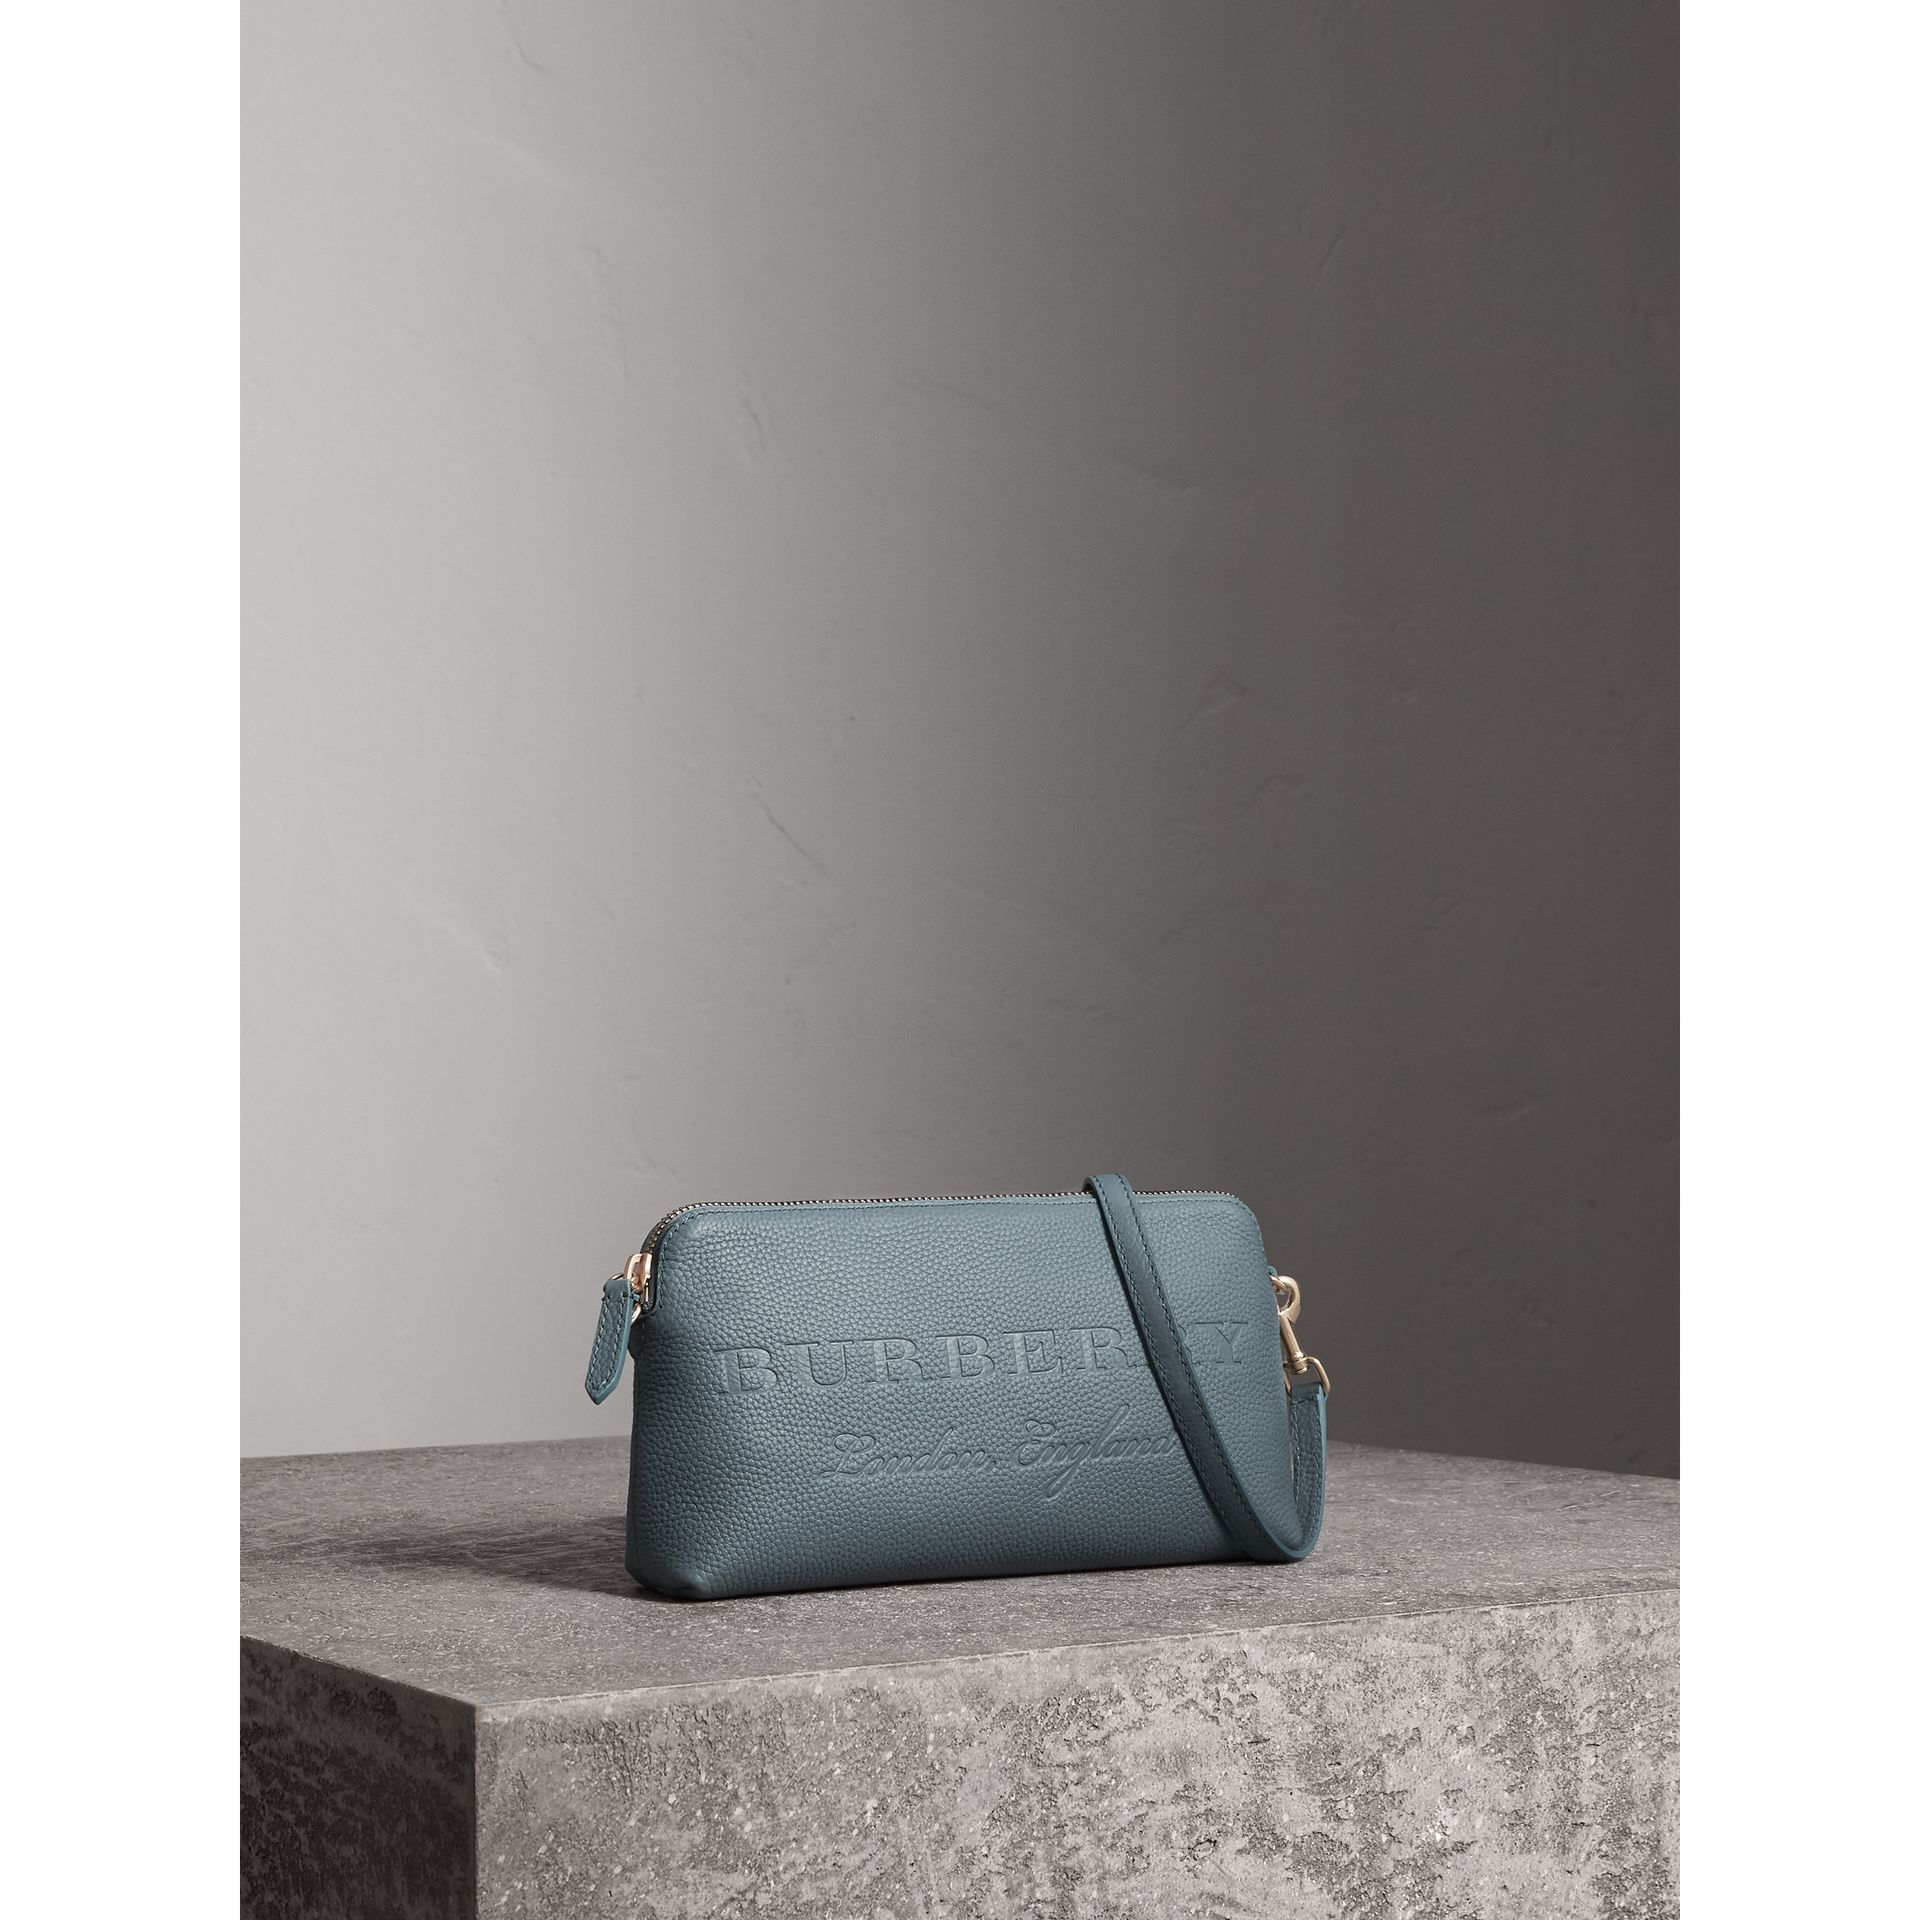 Embossed Leather Clutch Bag in Dusty Teal Blue - Women | Burberry - gallery image 7